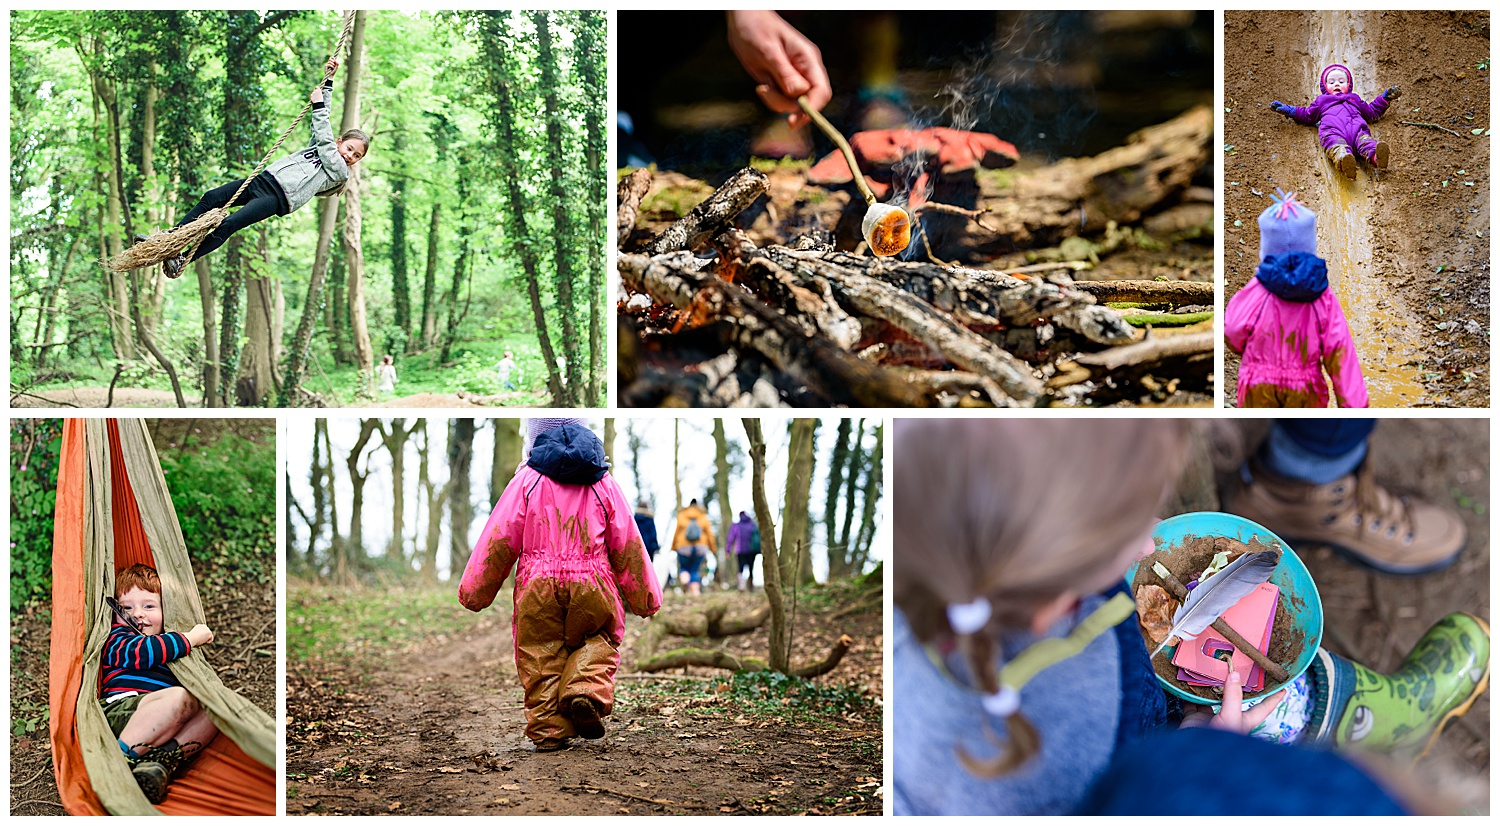 Montage of photos taken by a forest school photographer showing campfires, mud slides and hammocks